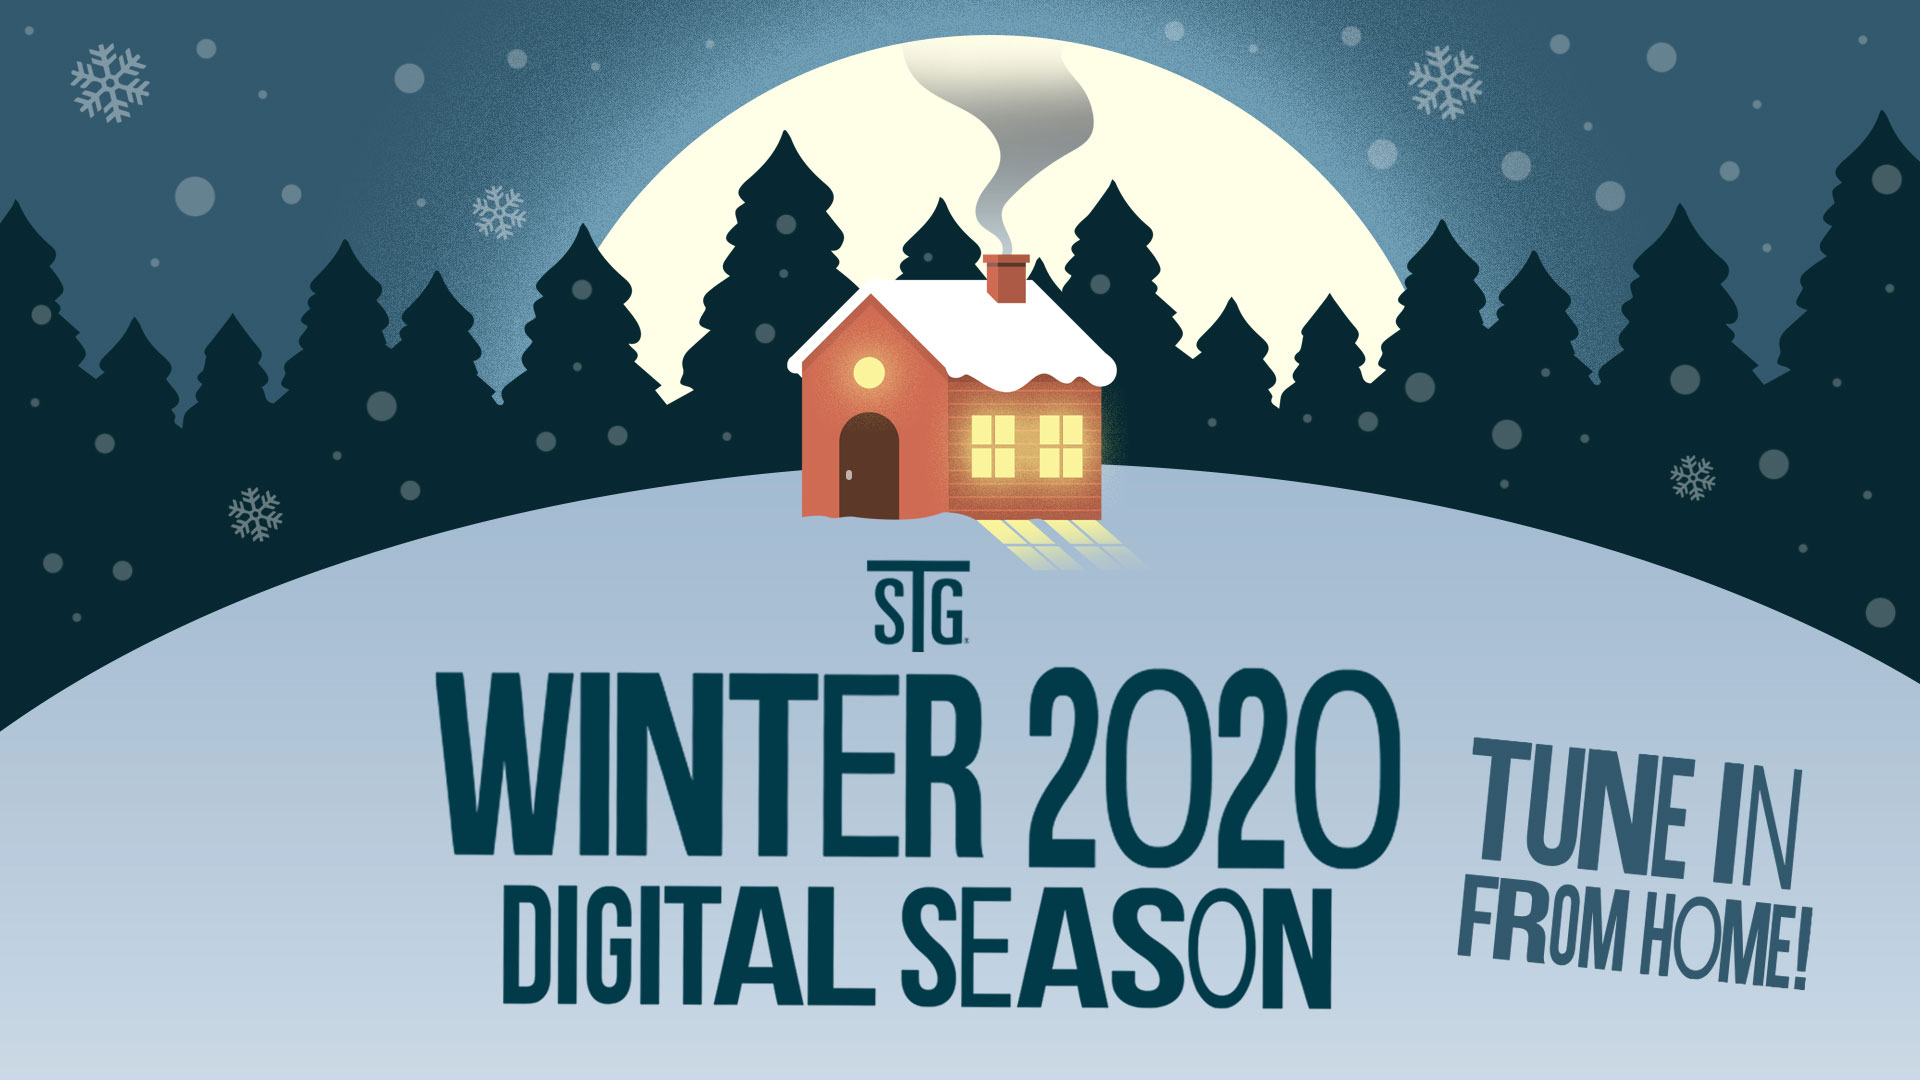 Winter 2020 Digital Season